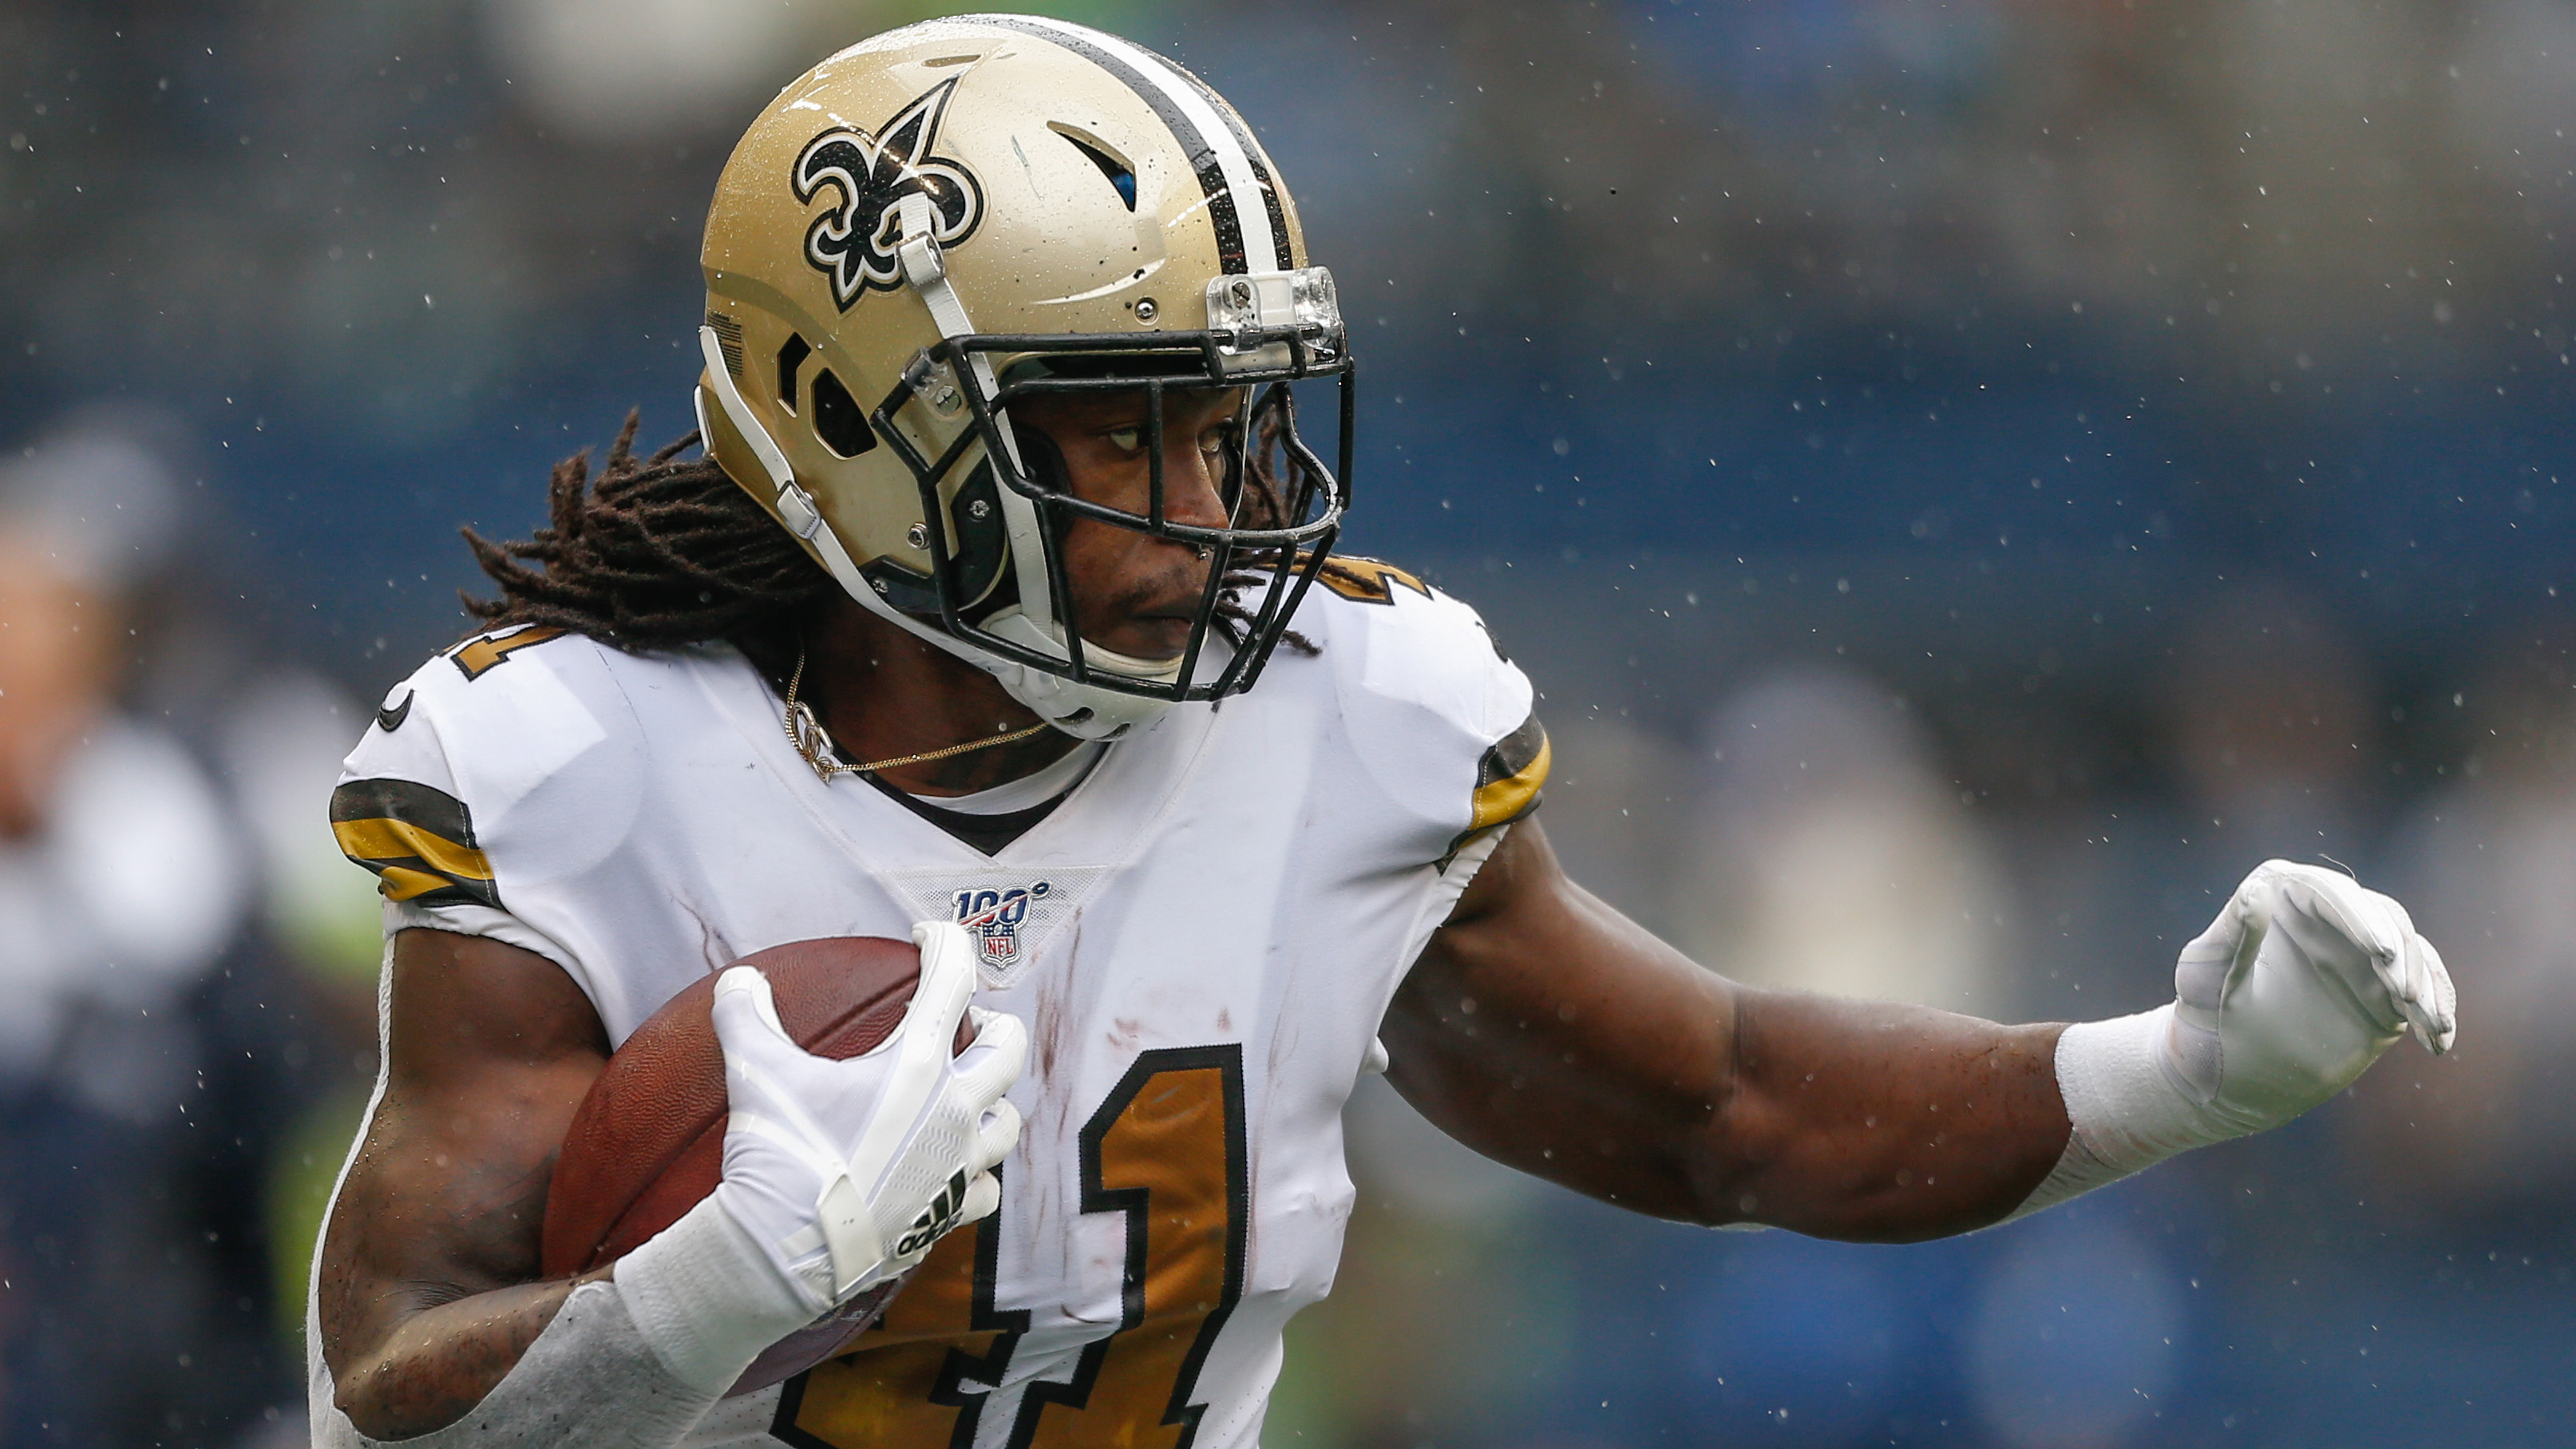 Saints' Alvin Kamara dealing with high-ankle injury